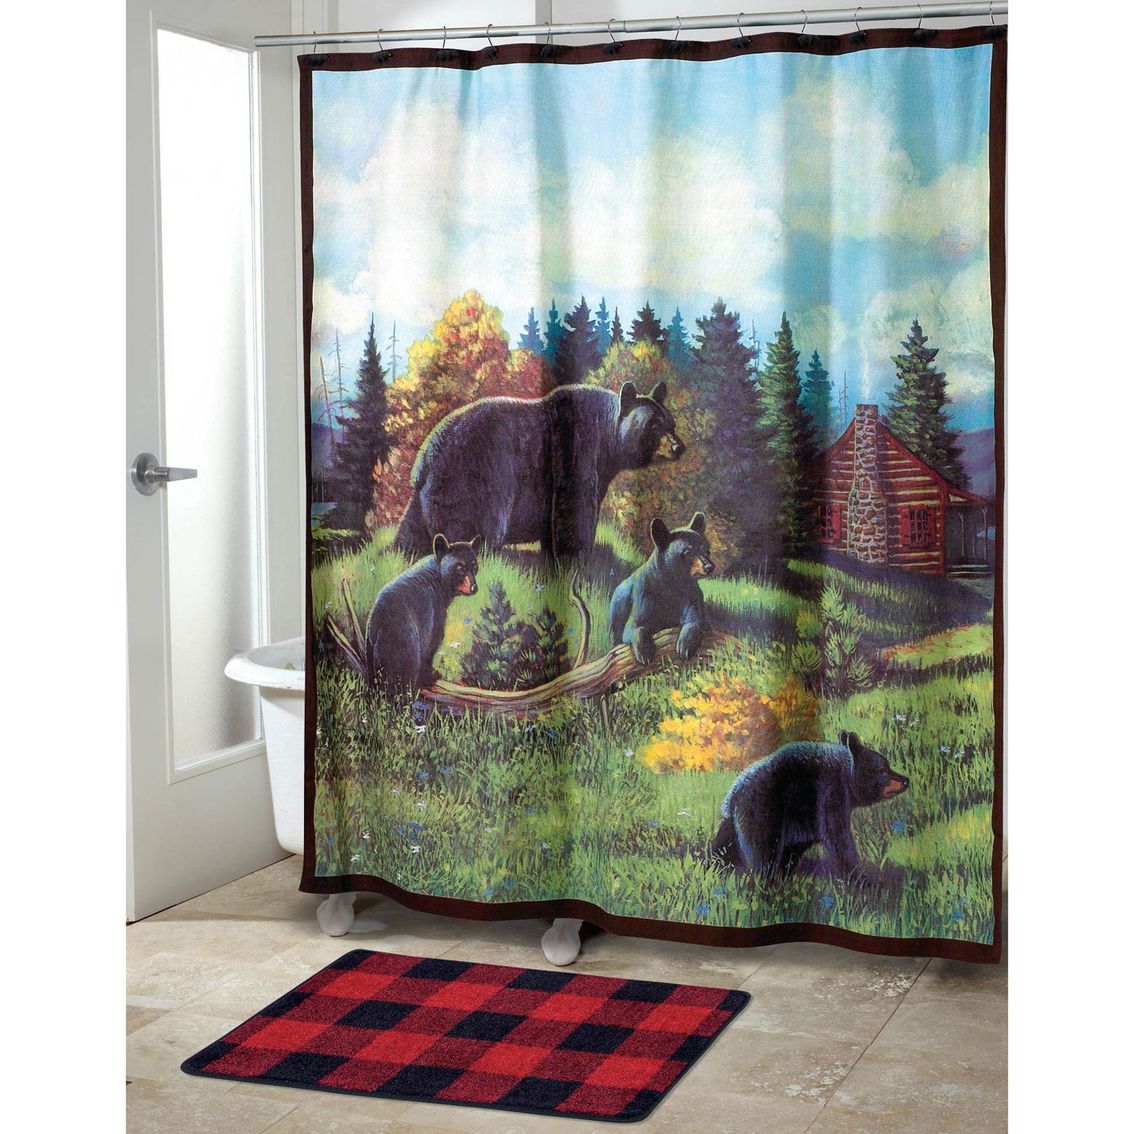 Avanti Black Bear Lodge Shower Curtain Shower Curtains Bath pertaining to size 1134 X 1134